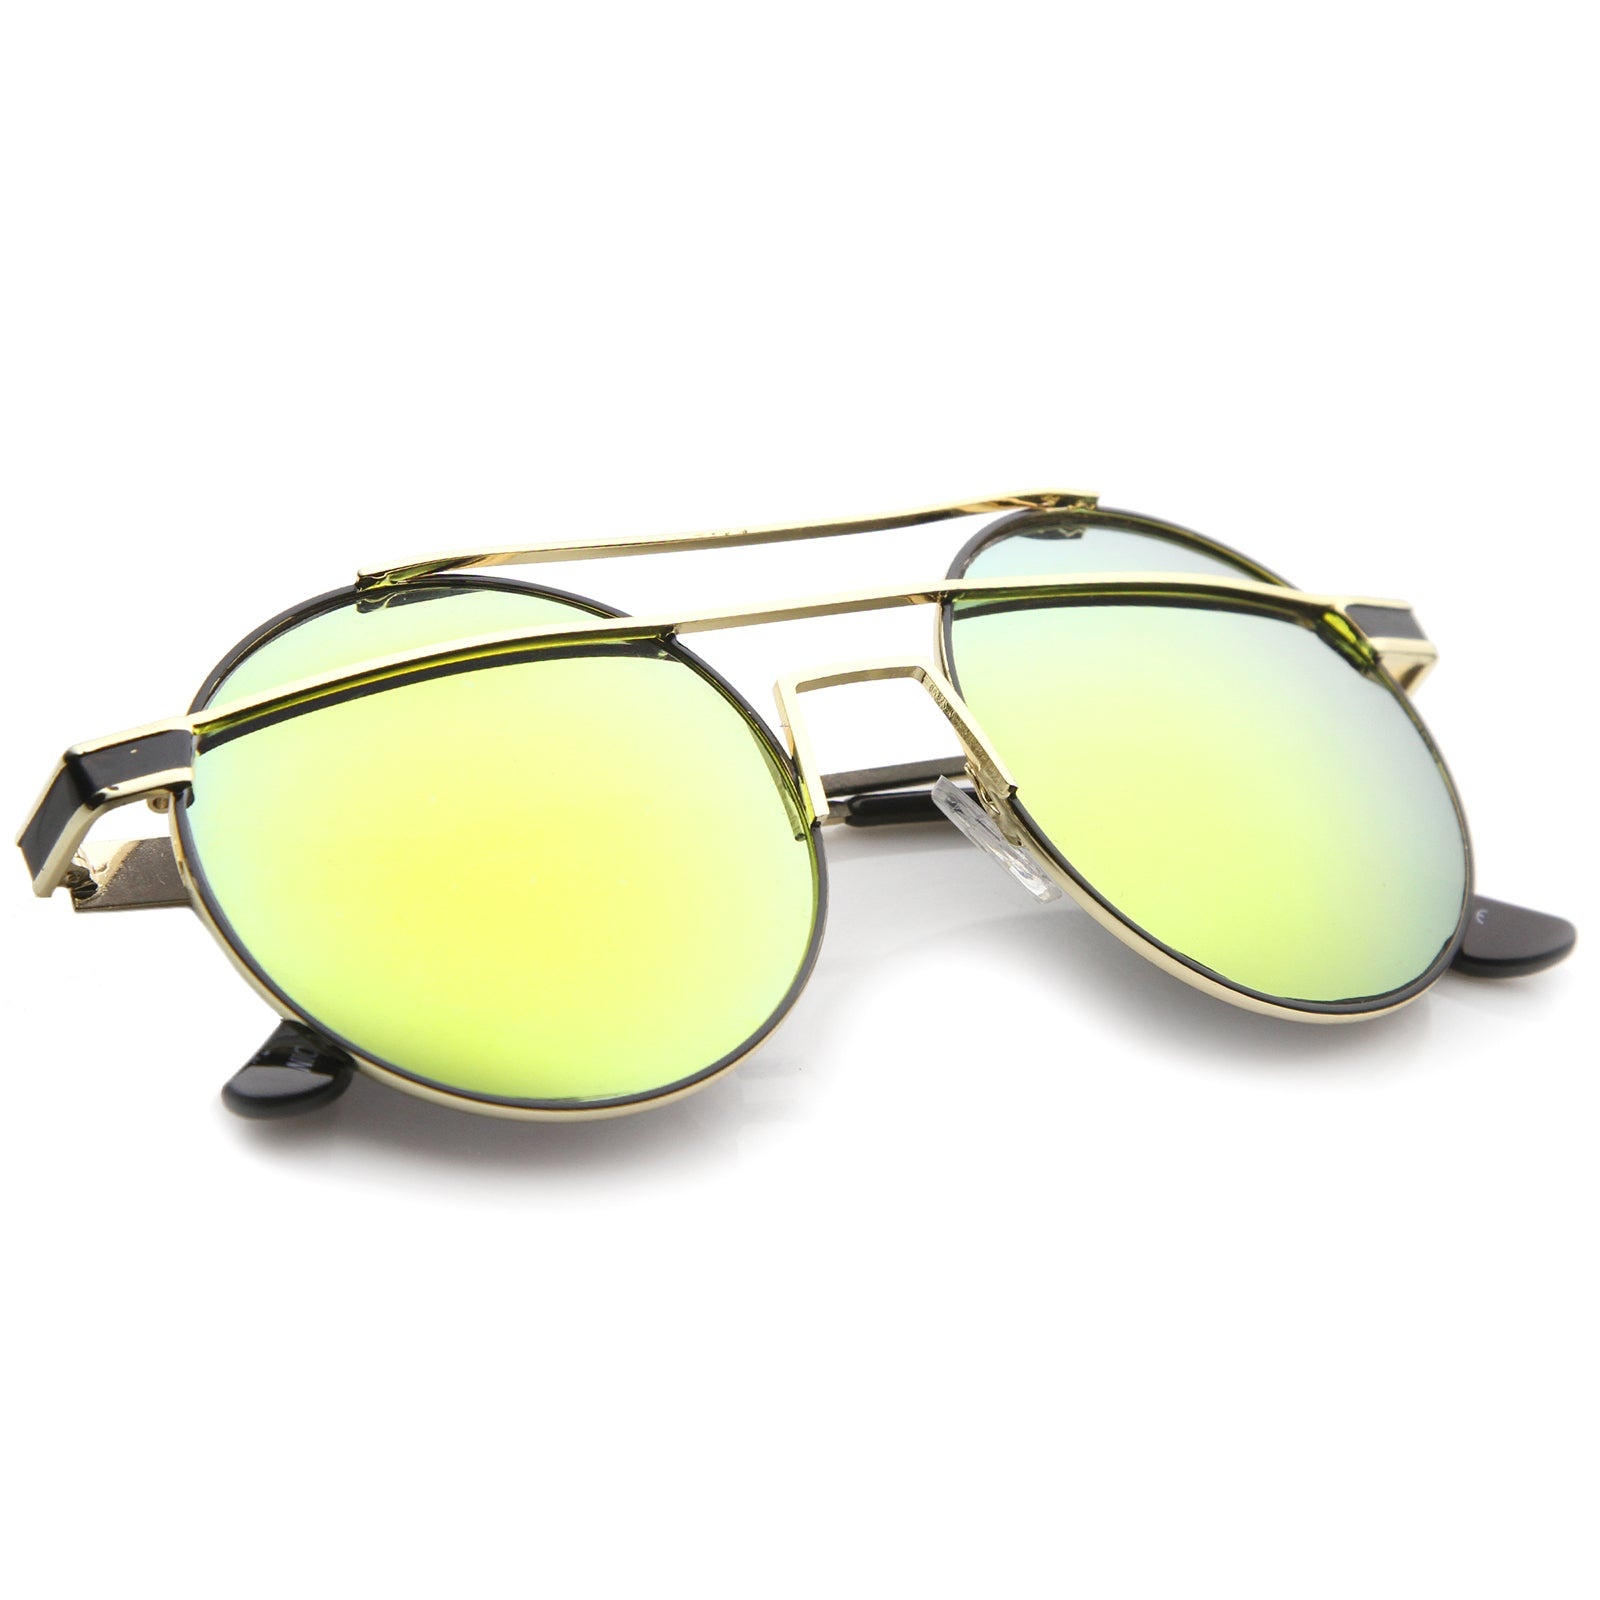 Modern Metal Frame Double Bridge Colored Mirror Lens Round Sunglasses 59mm - sunglass.la - 8